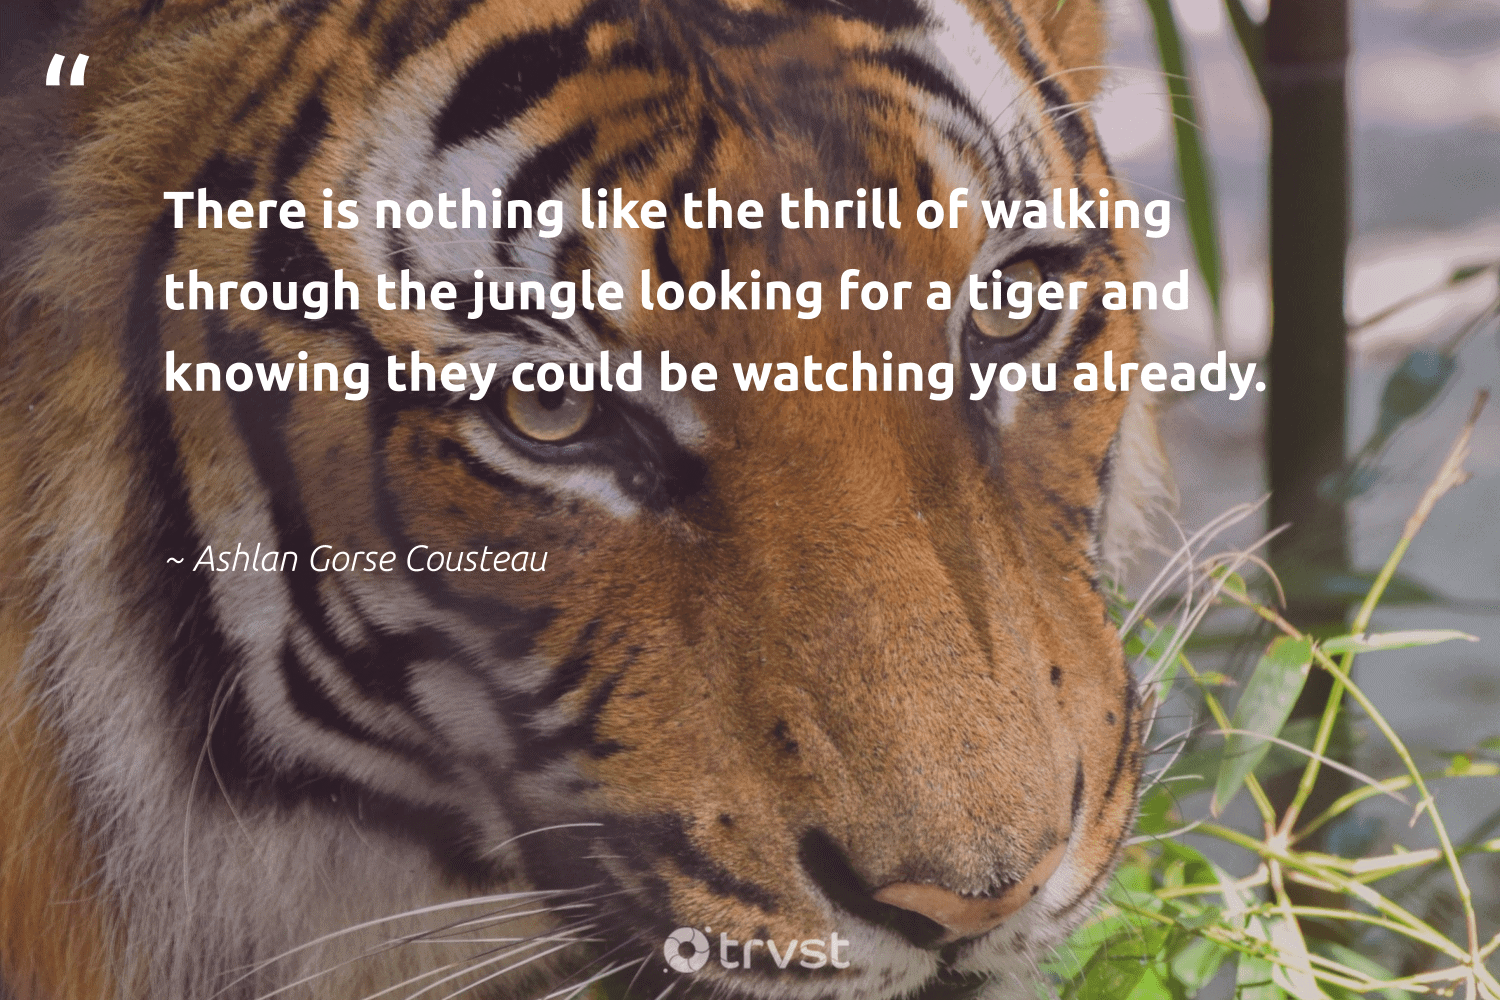 """""""There is nothing like the thrill of walking through the jungle looking for a tiger and knowing they could be watching you already.""""  - Ashlan Gorse Cousteau #trvst #quotes #tiger #splendidanimals #dotherightthing #majesticwildlife #beinspired #perfectnature #dogood #wild #bethechange #animalphotography"""